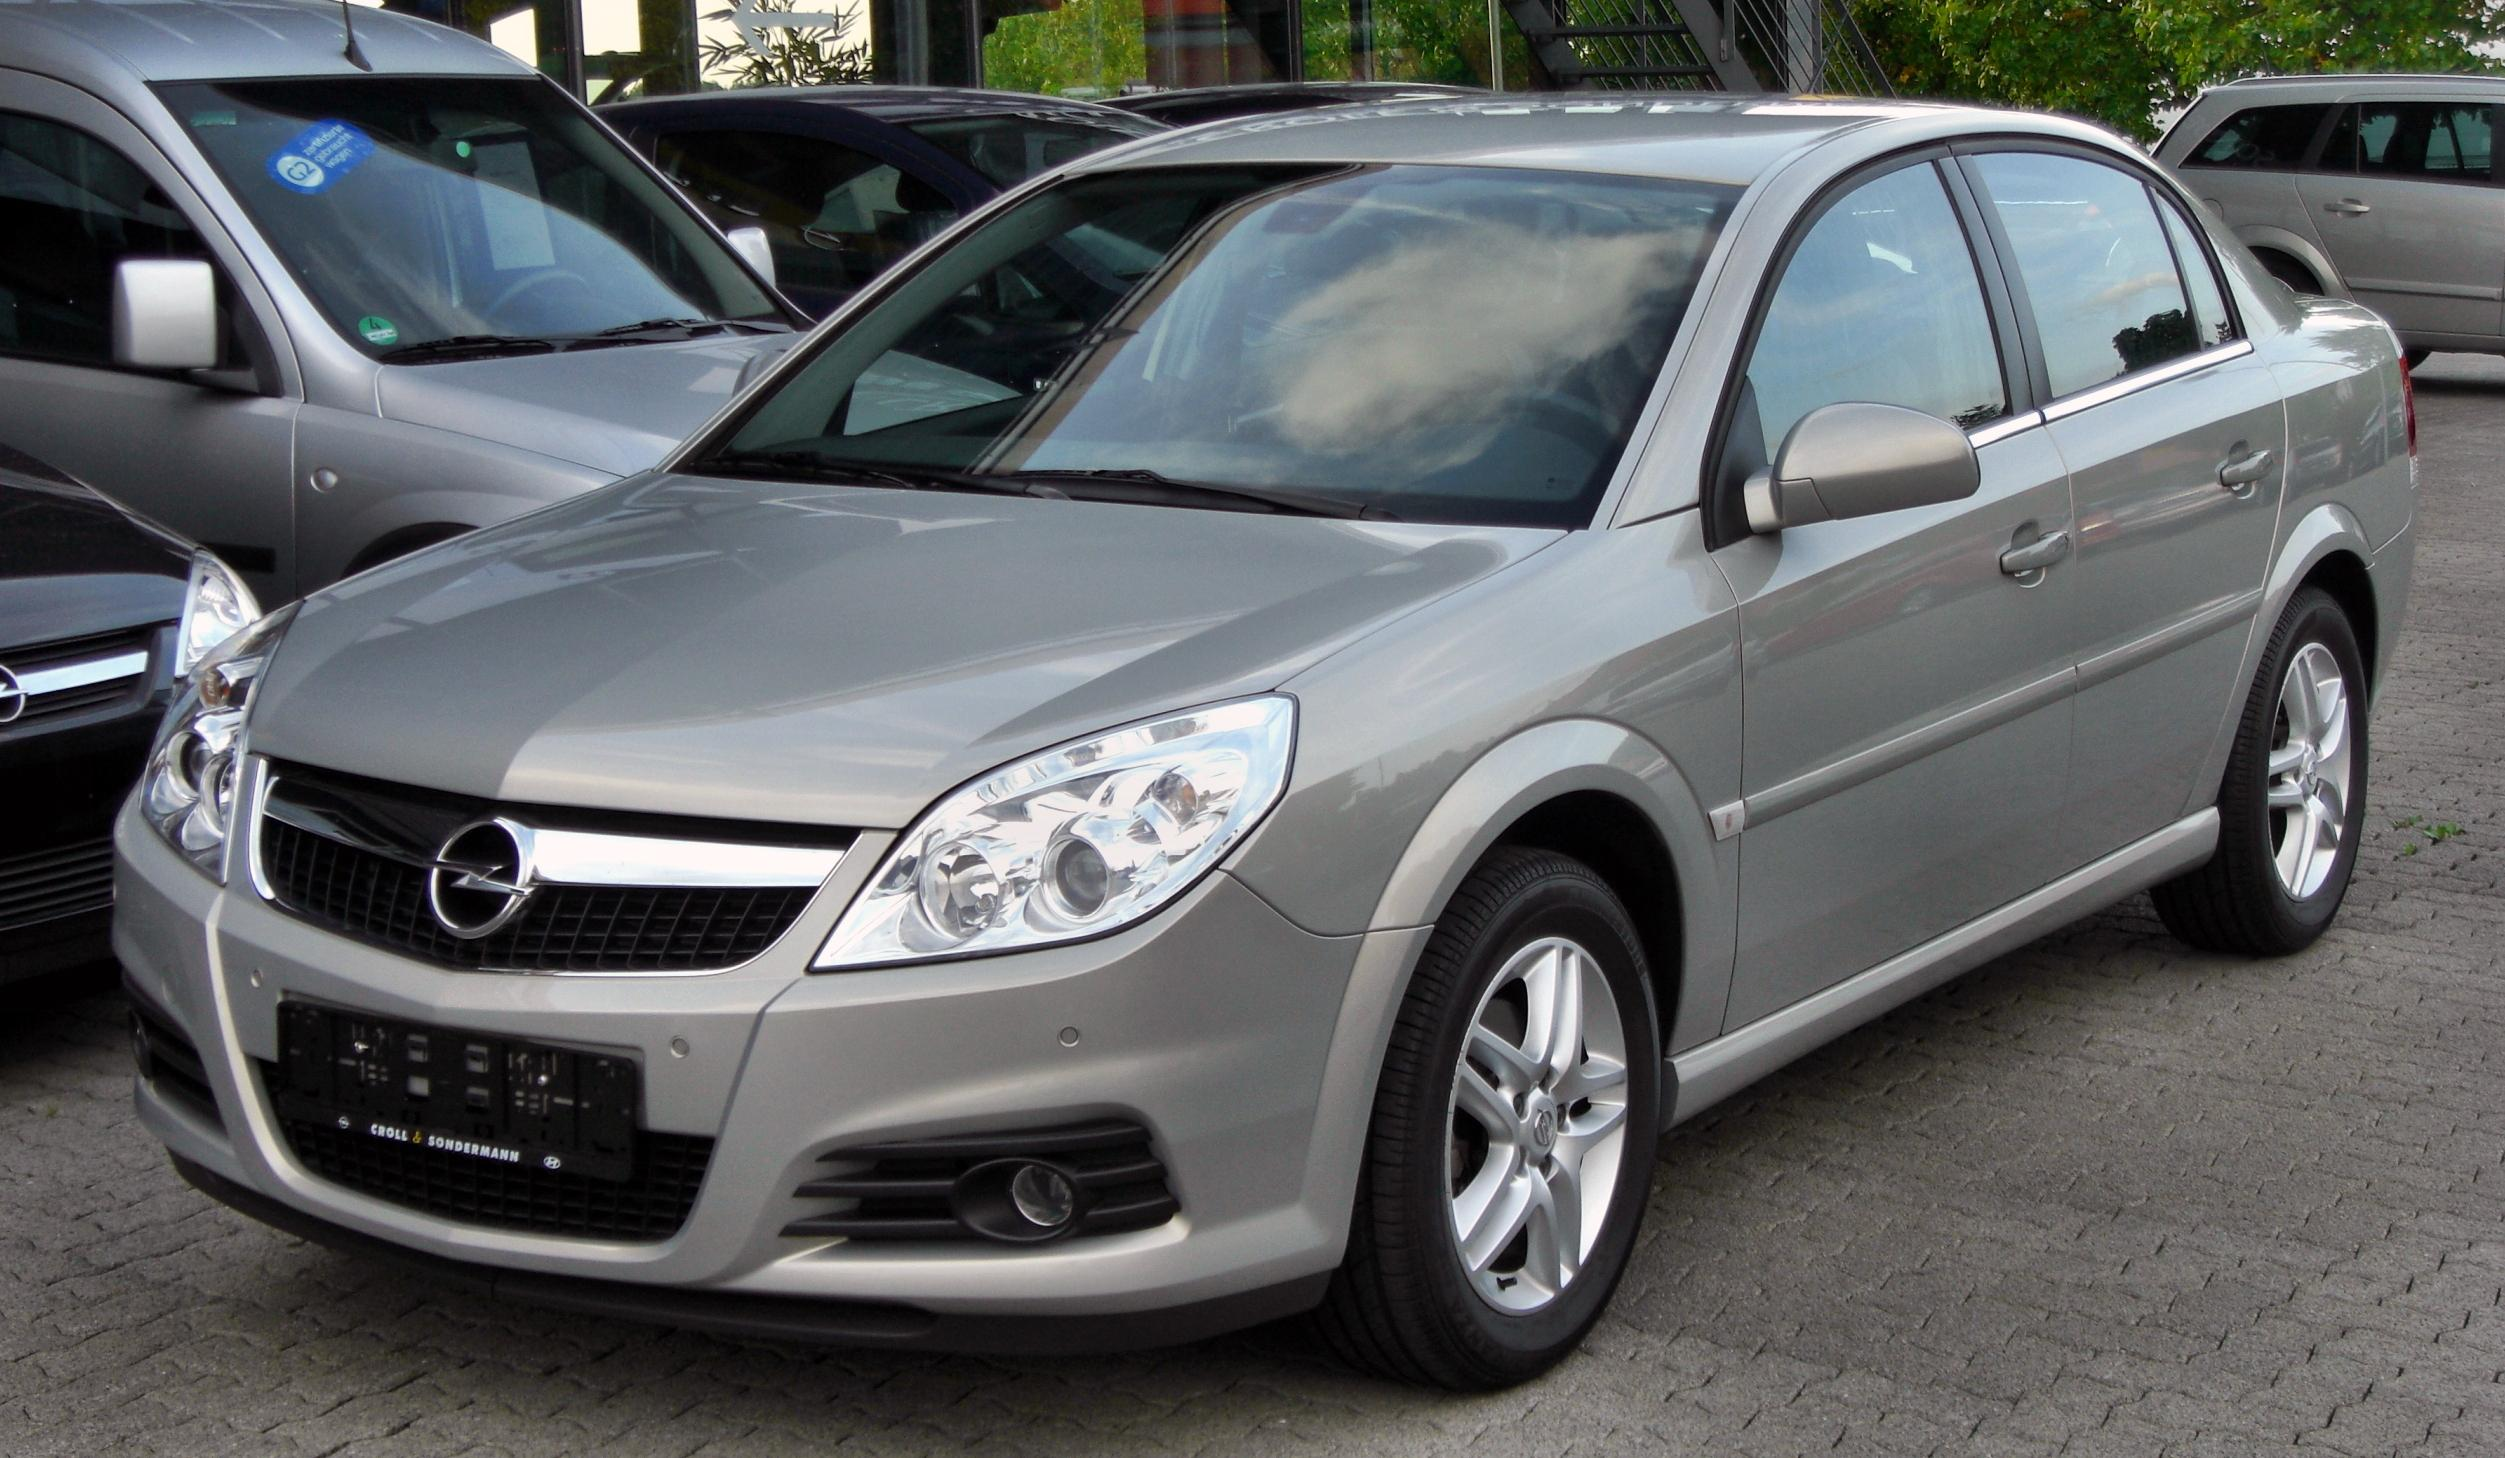 Illustration : OPEL - VECTRA 2.2 DTI 16V 125 ELEGANCE